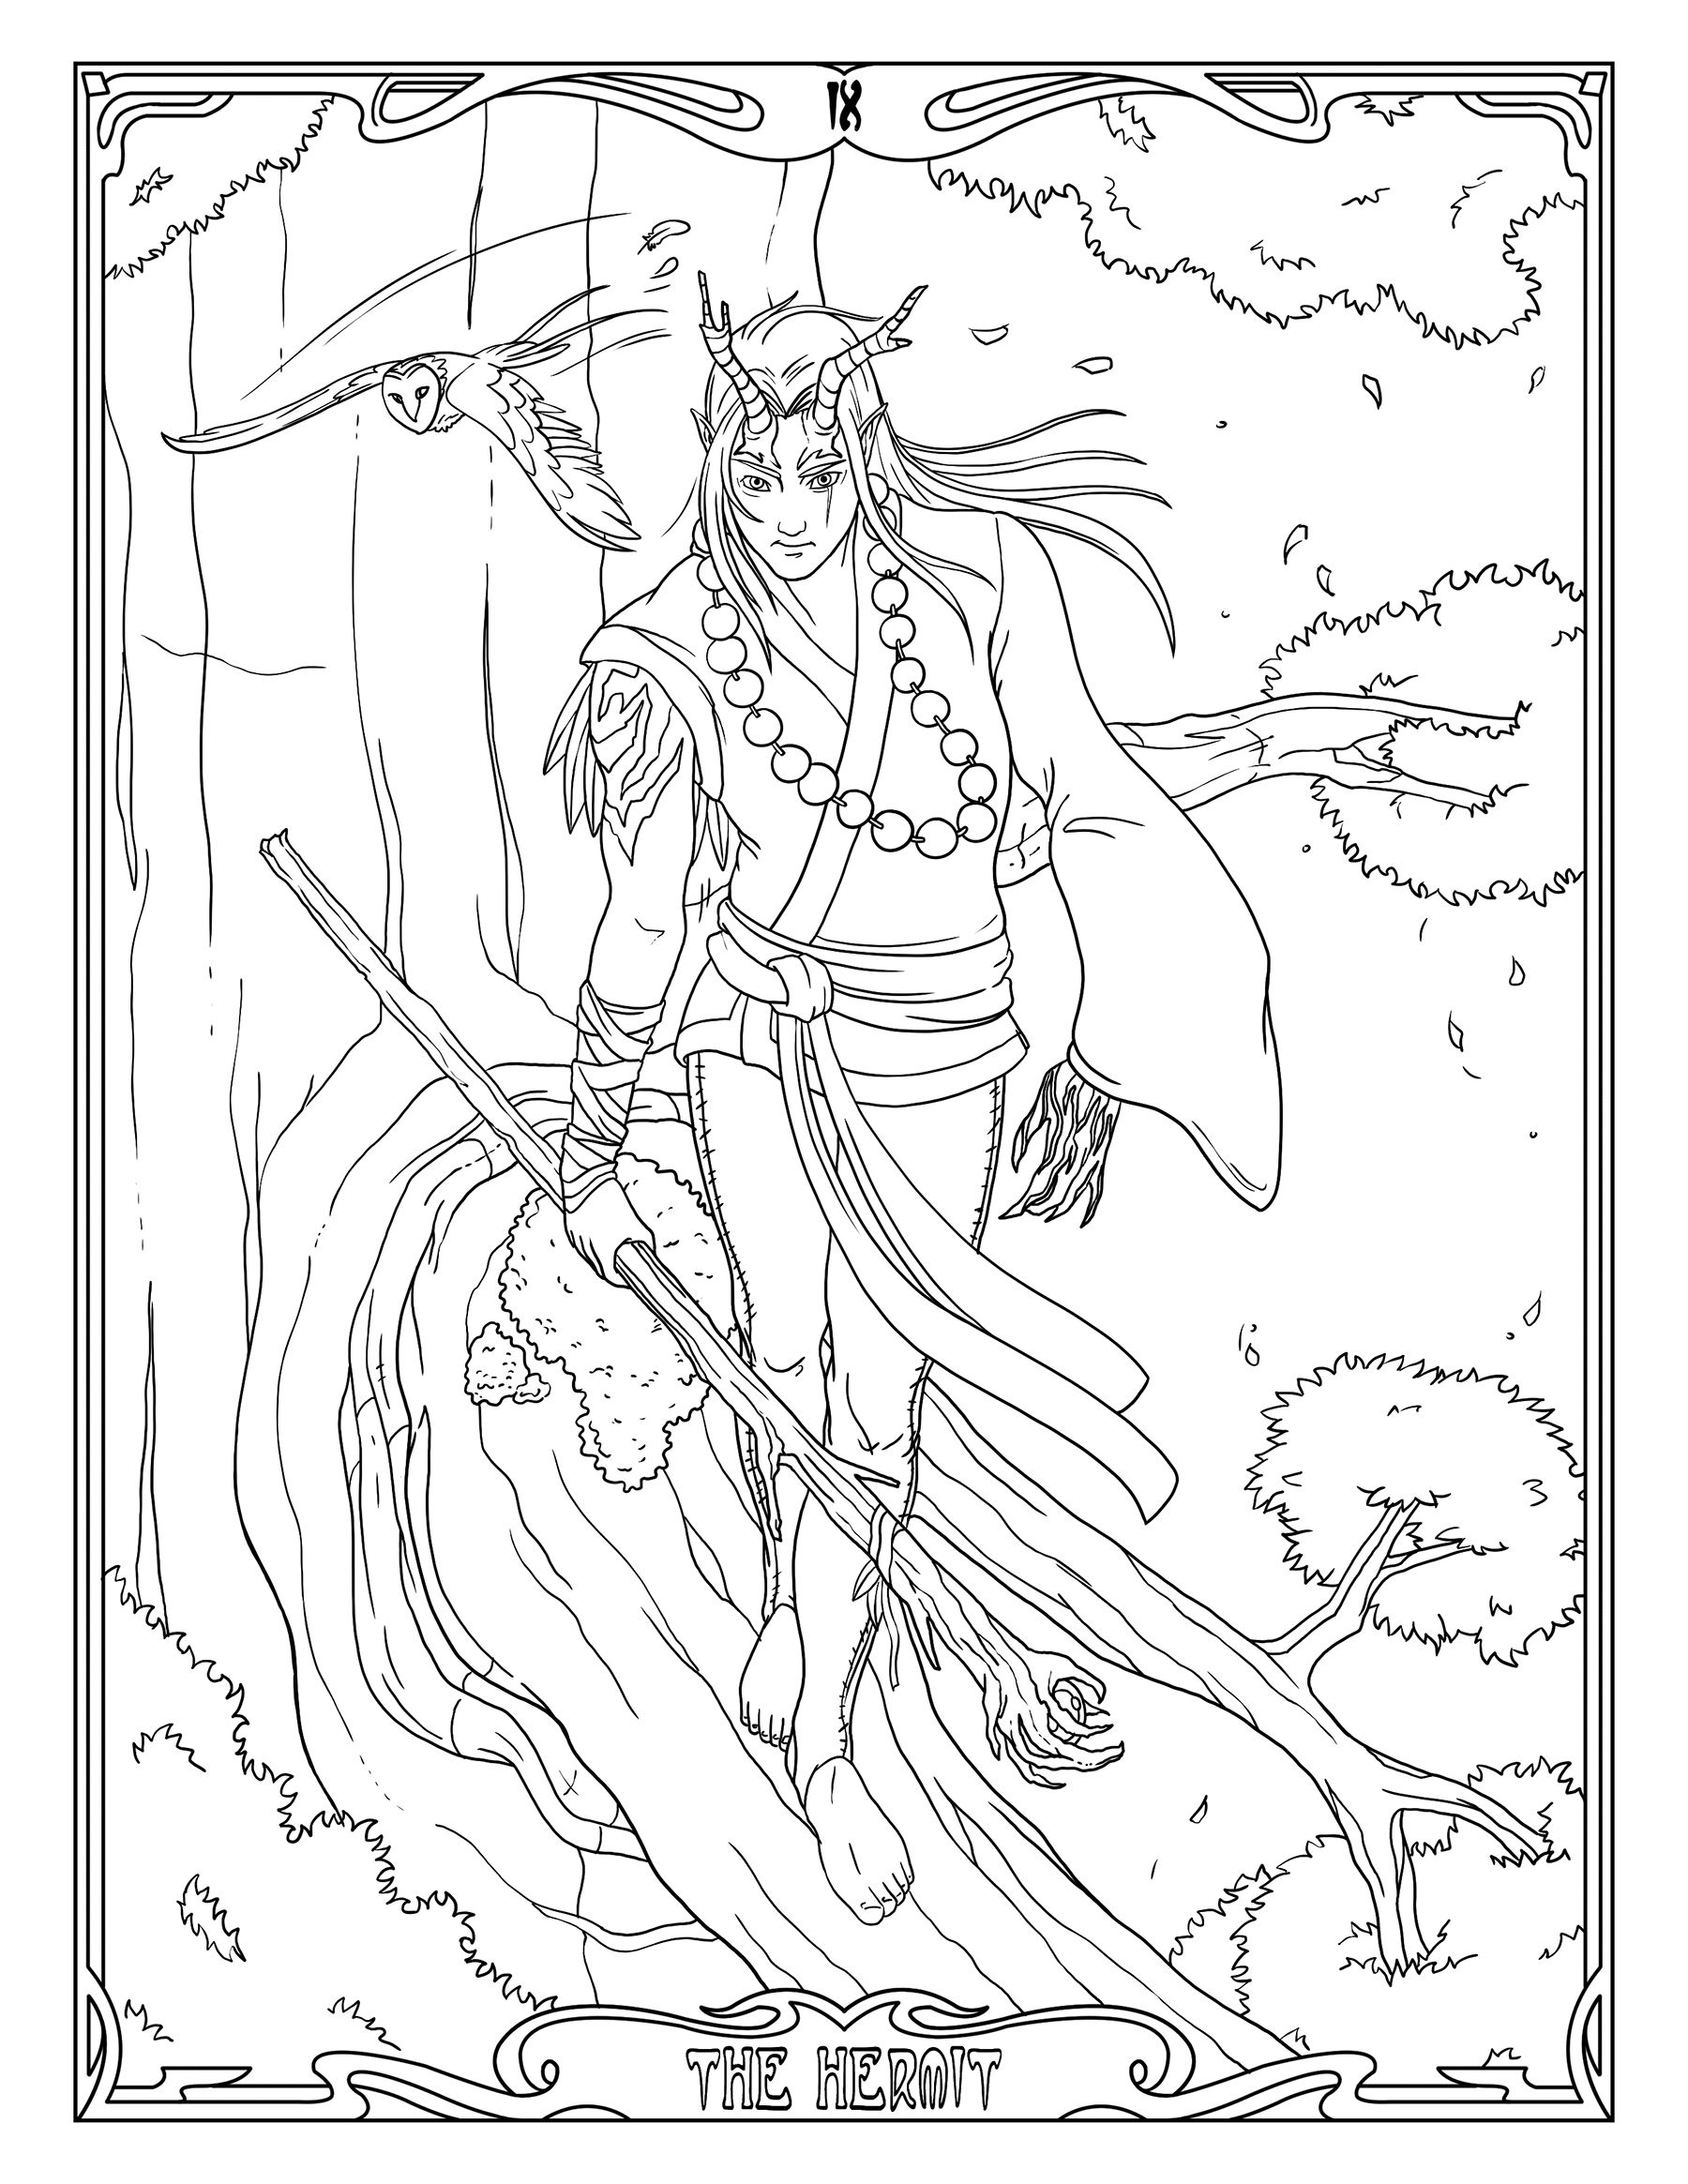 tarot coloring pages Elf, Druid, Printable Coloring Pages, Adult Coloring Page, Tarot  tarot coloring pages